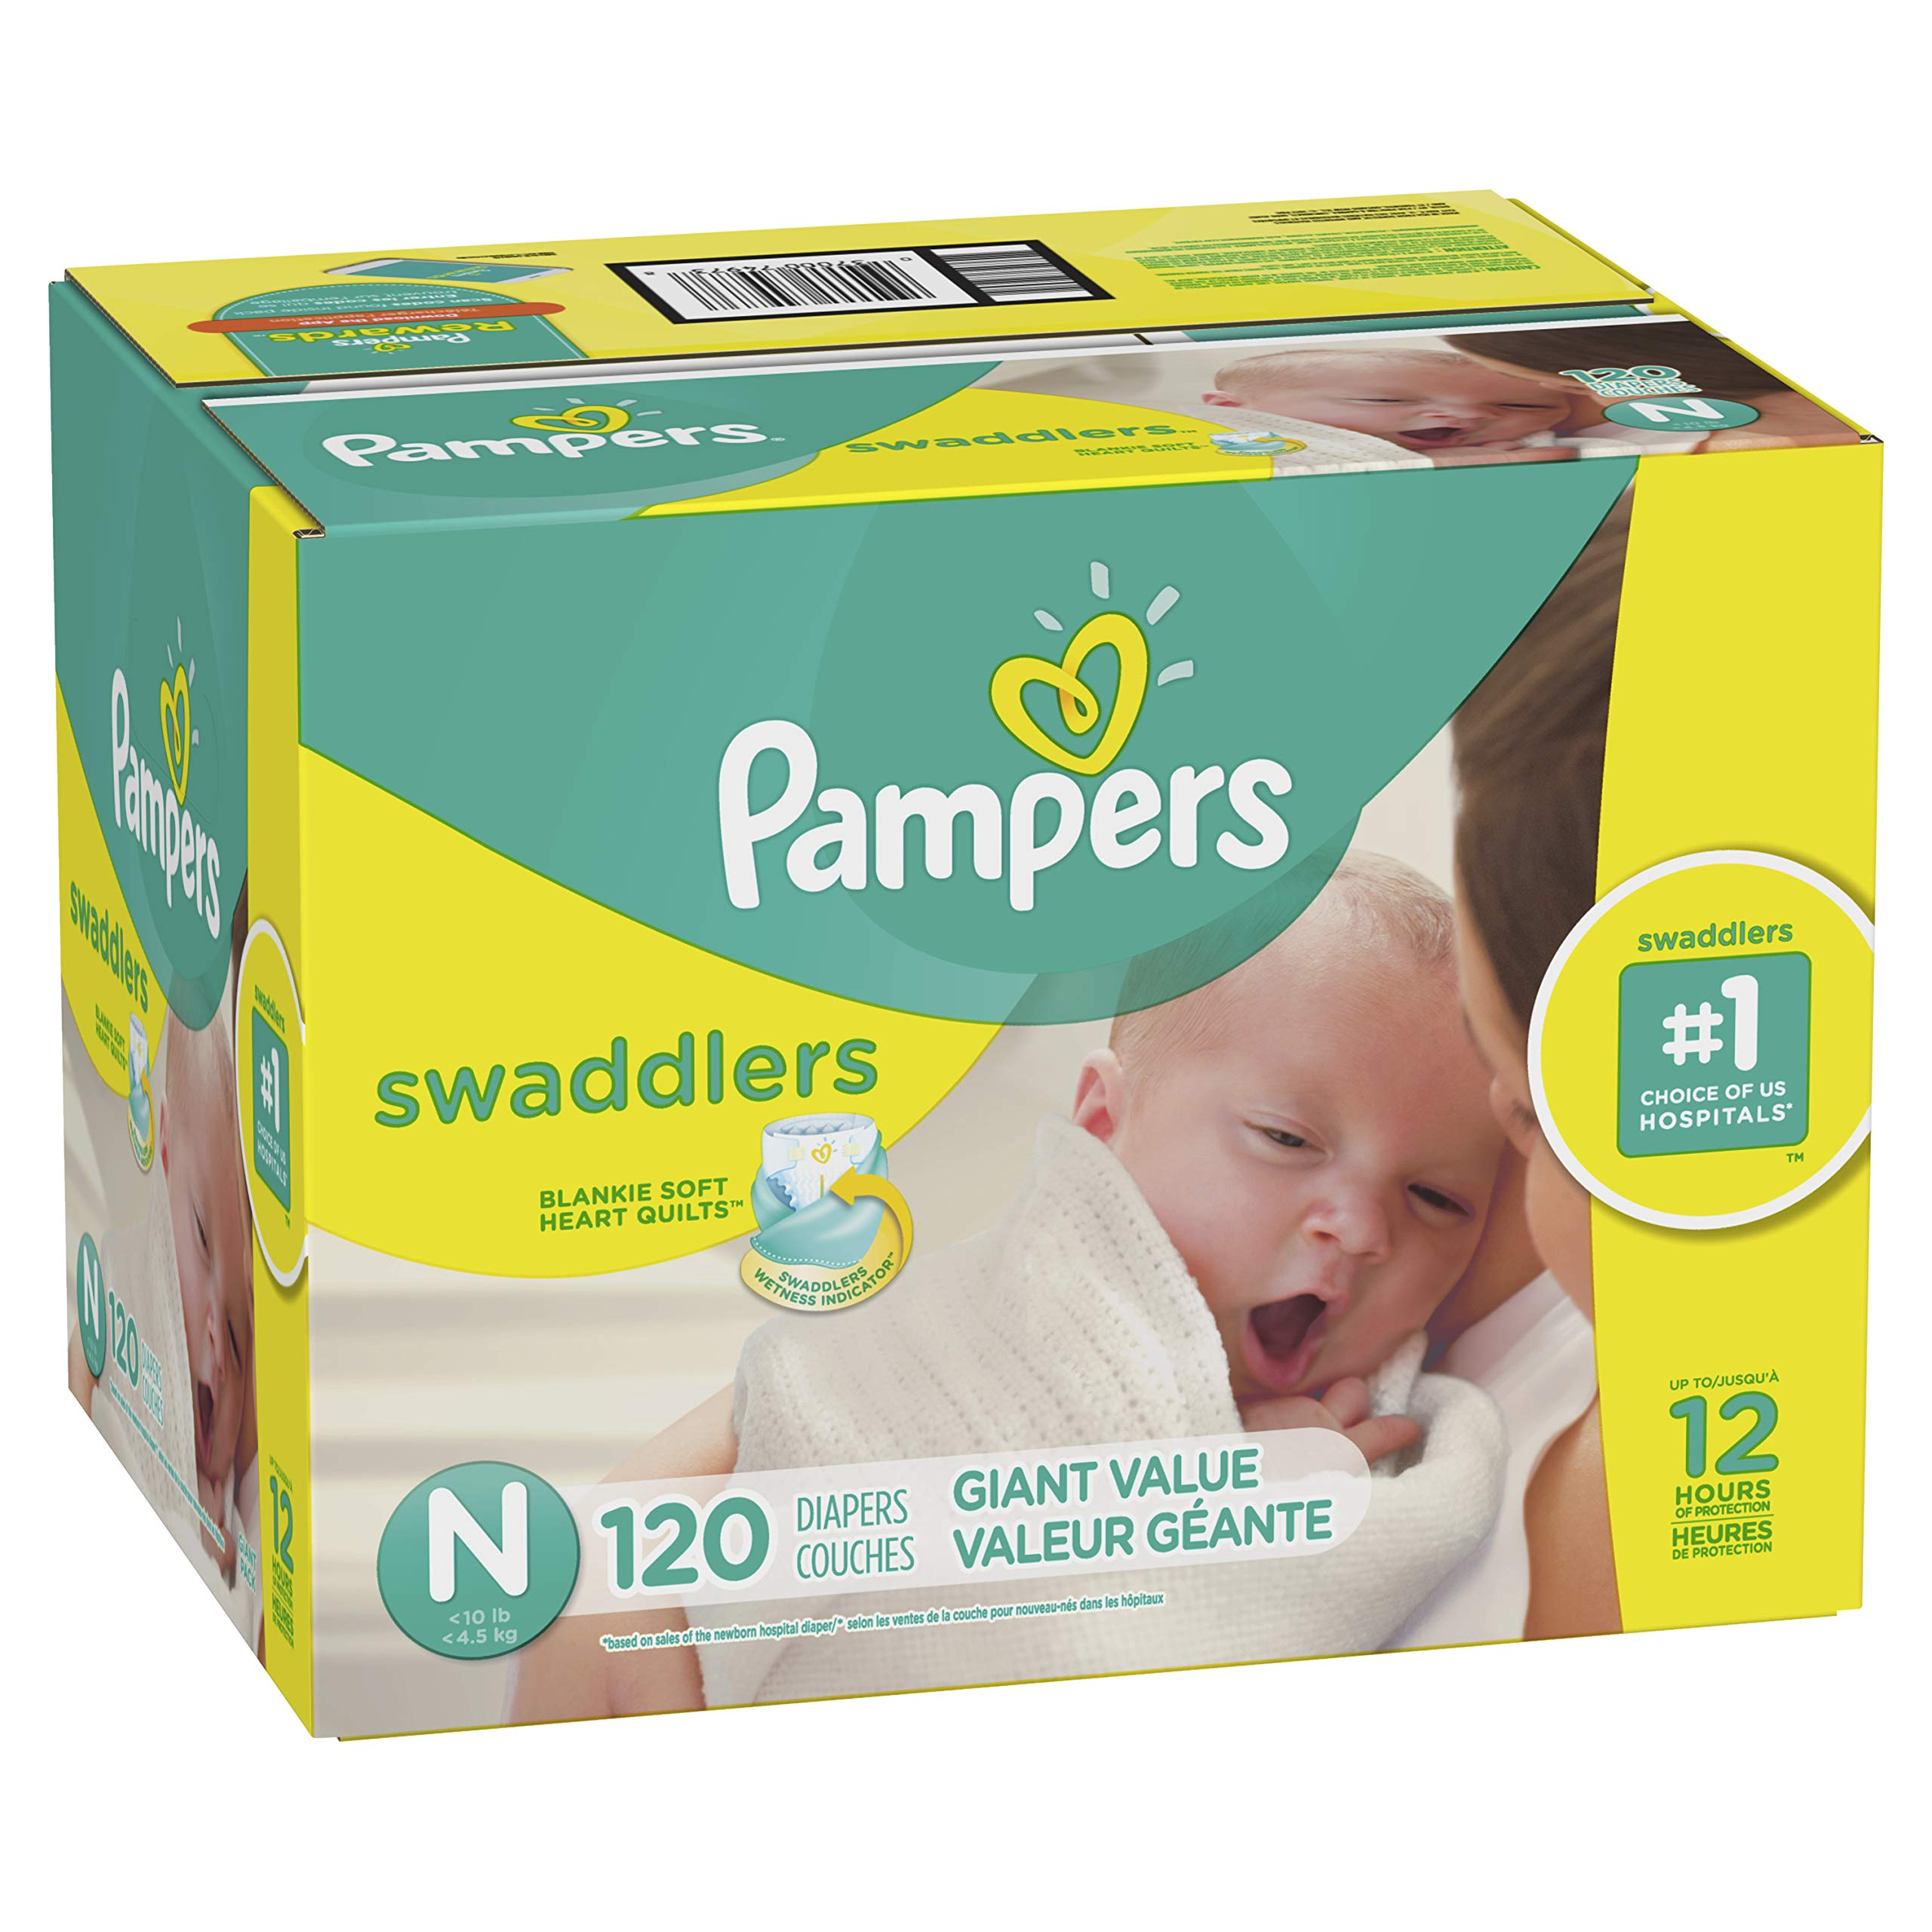 Pampers Swaddlers Disposable Diapers | Aaron Finds It